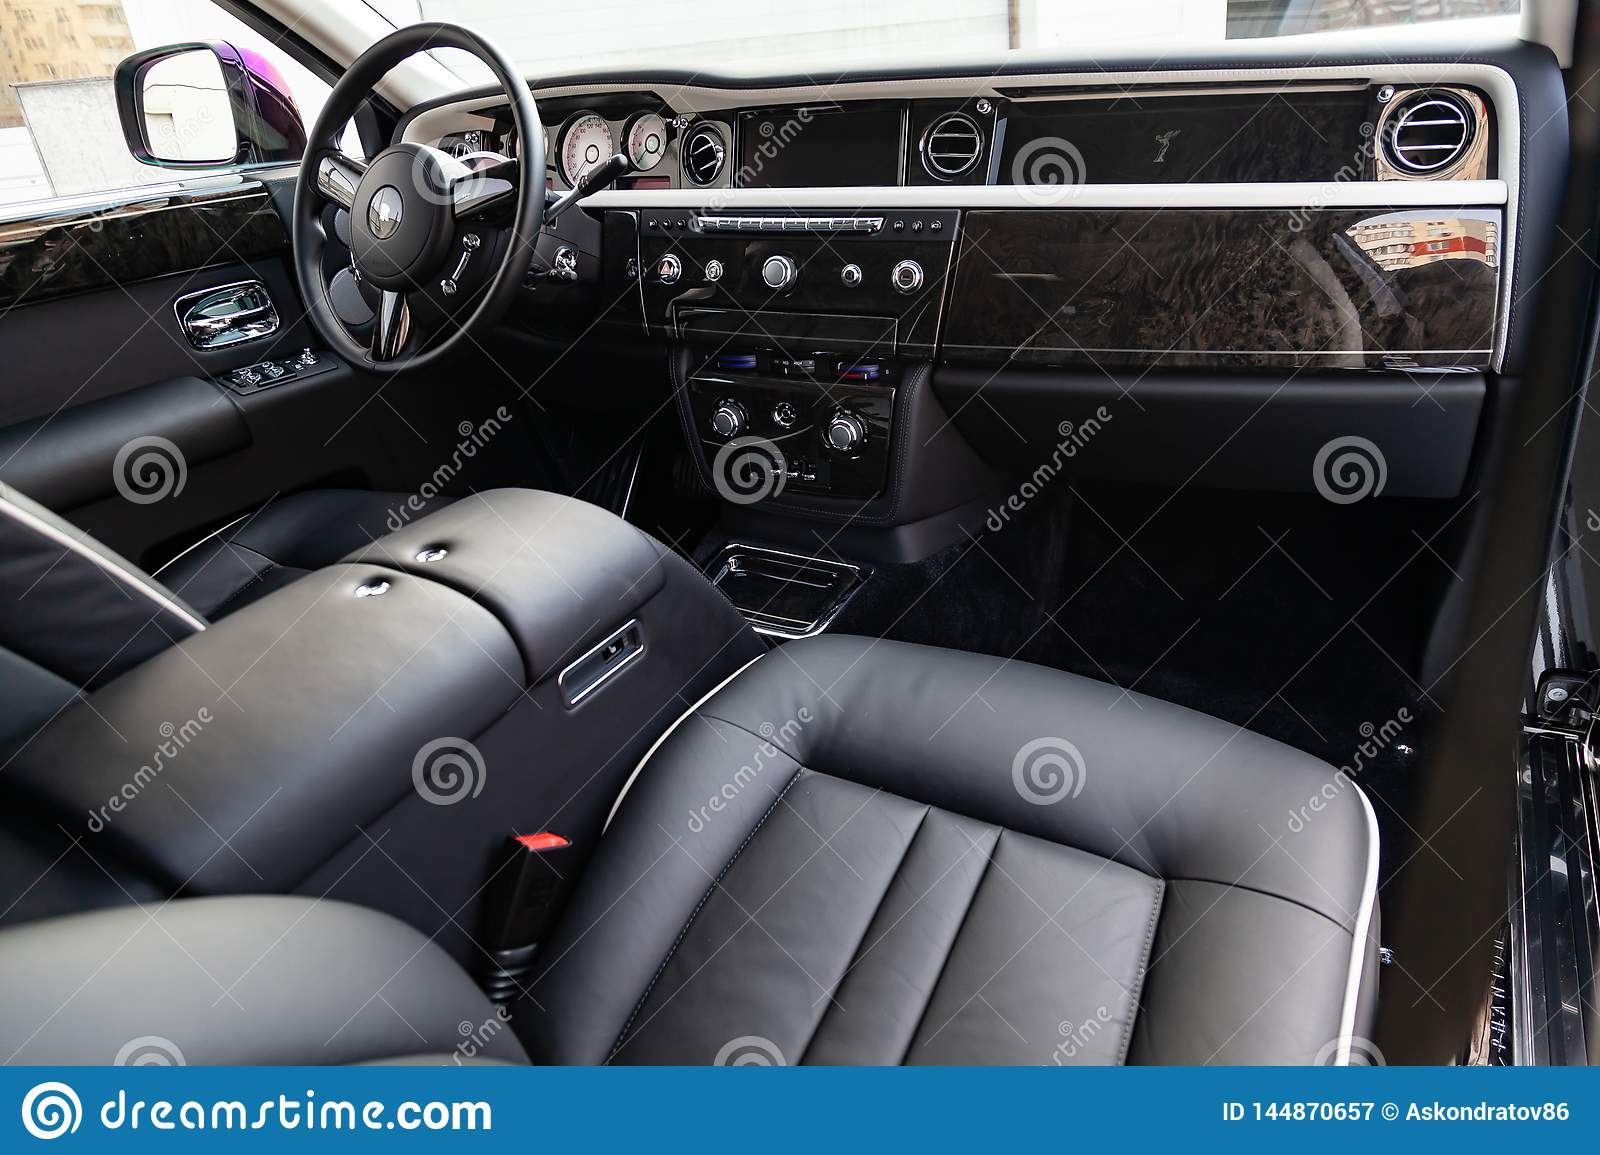 Interior View Of New A Very Expensive Rolls Royce Phantom Car A Long Black Limousine With Dashboard Steering Wheel Seats On Editorial Photography Image Of Germany Classic 144870657